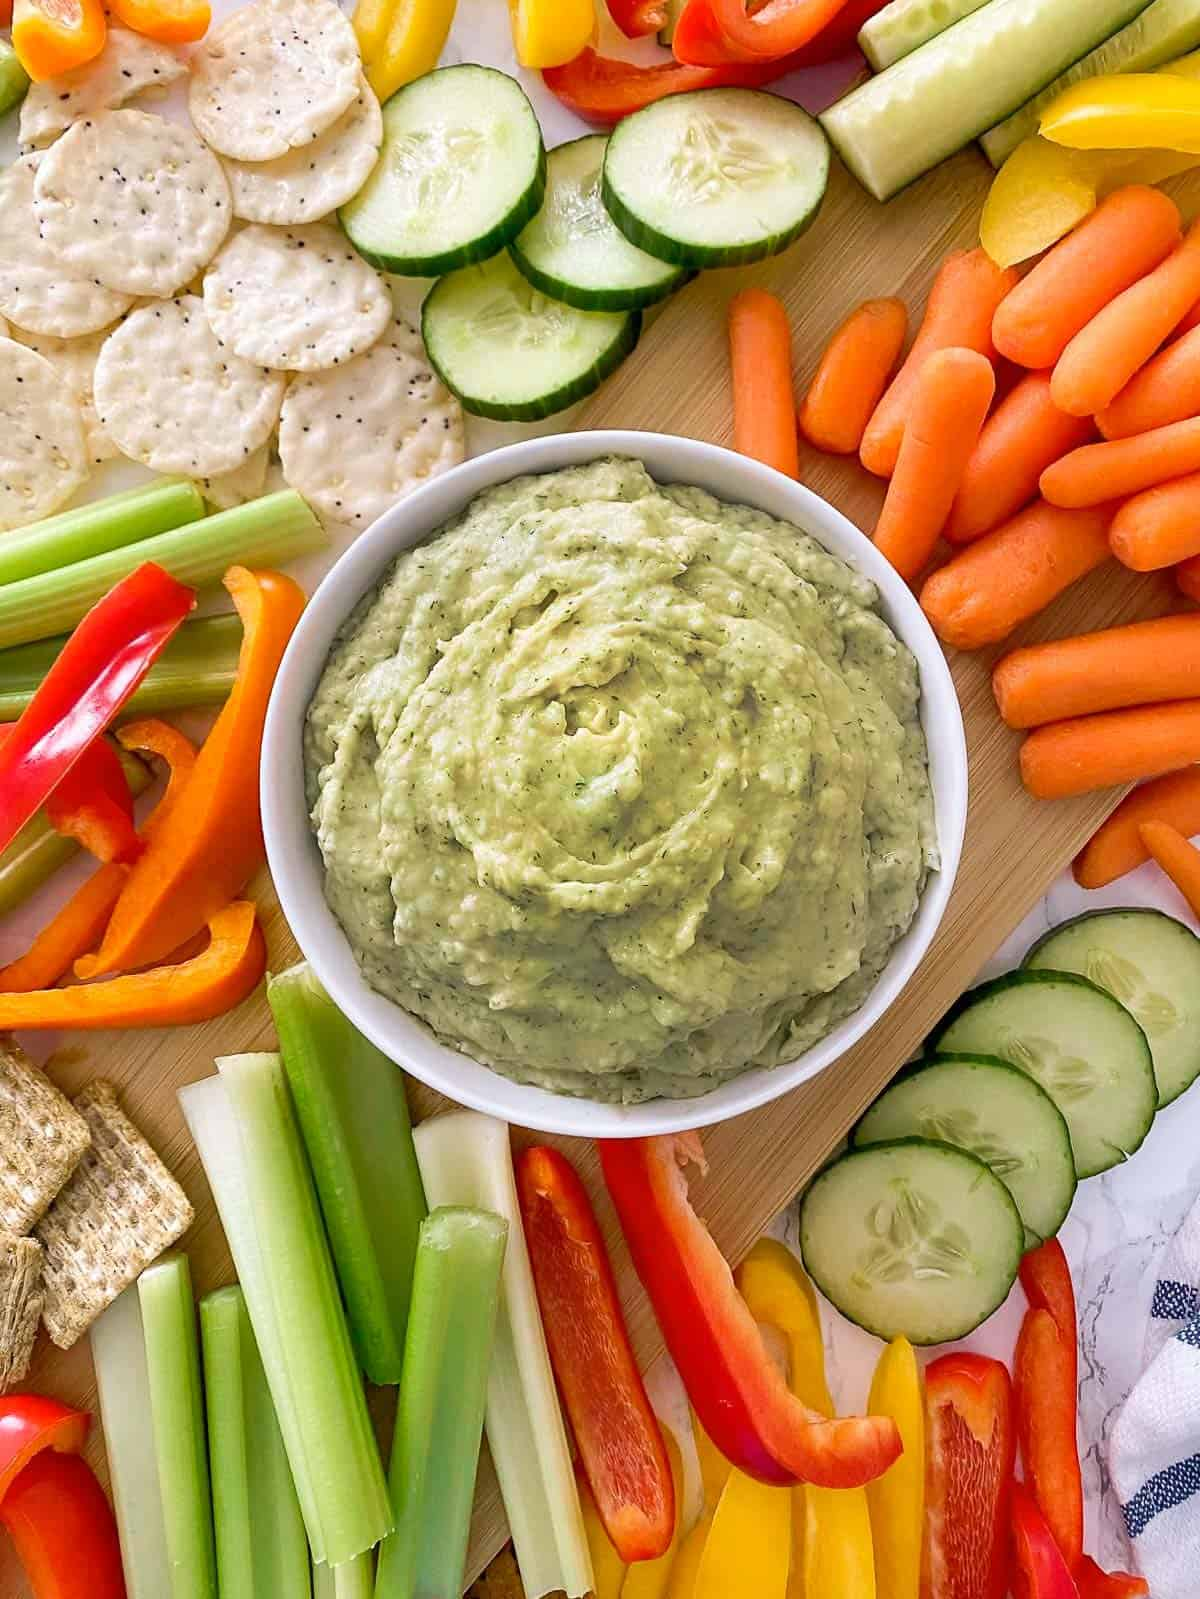 Bowl of dill pickle hummus on cutting board, surrounded by raw veggies.